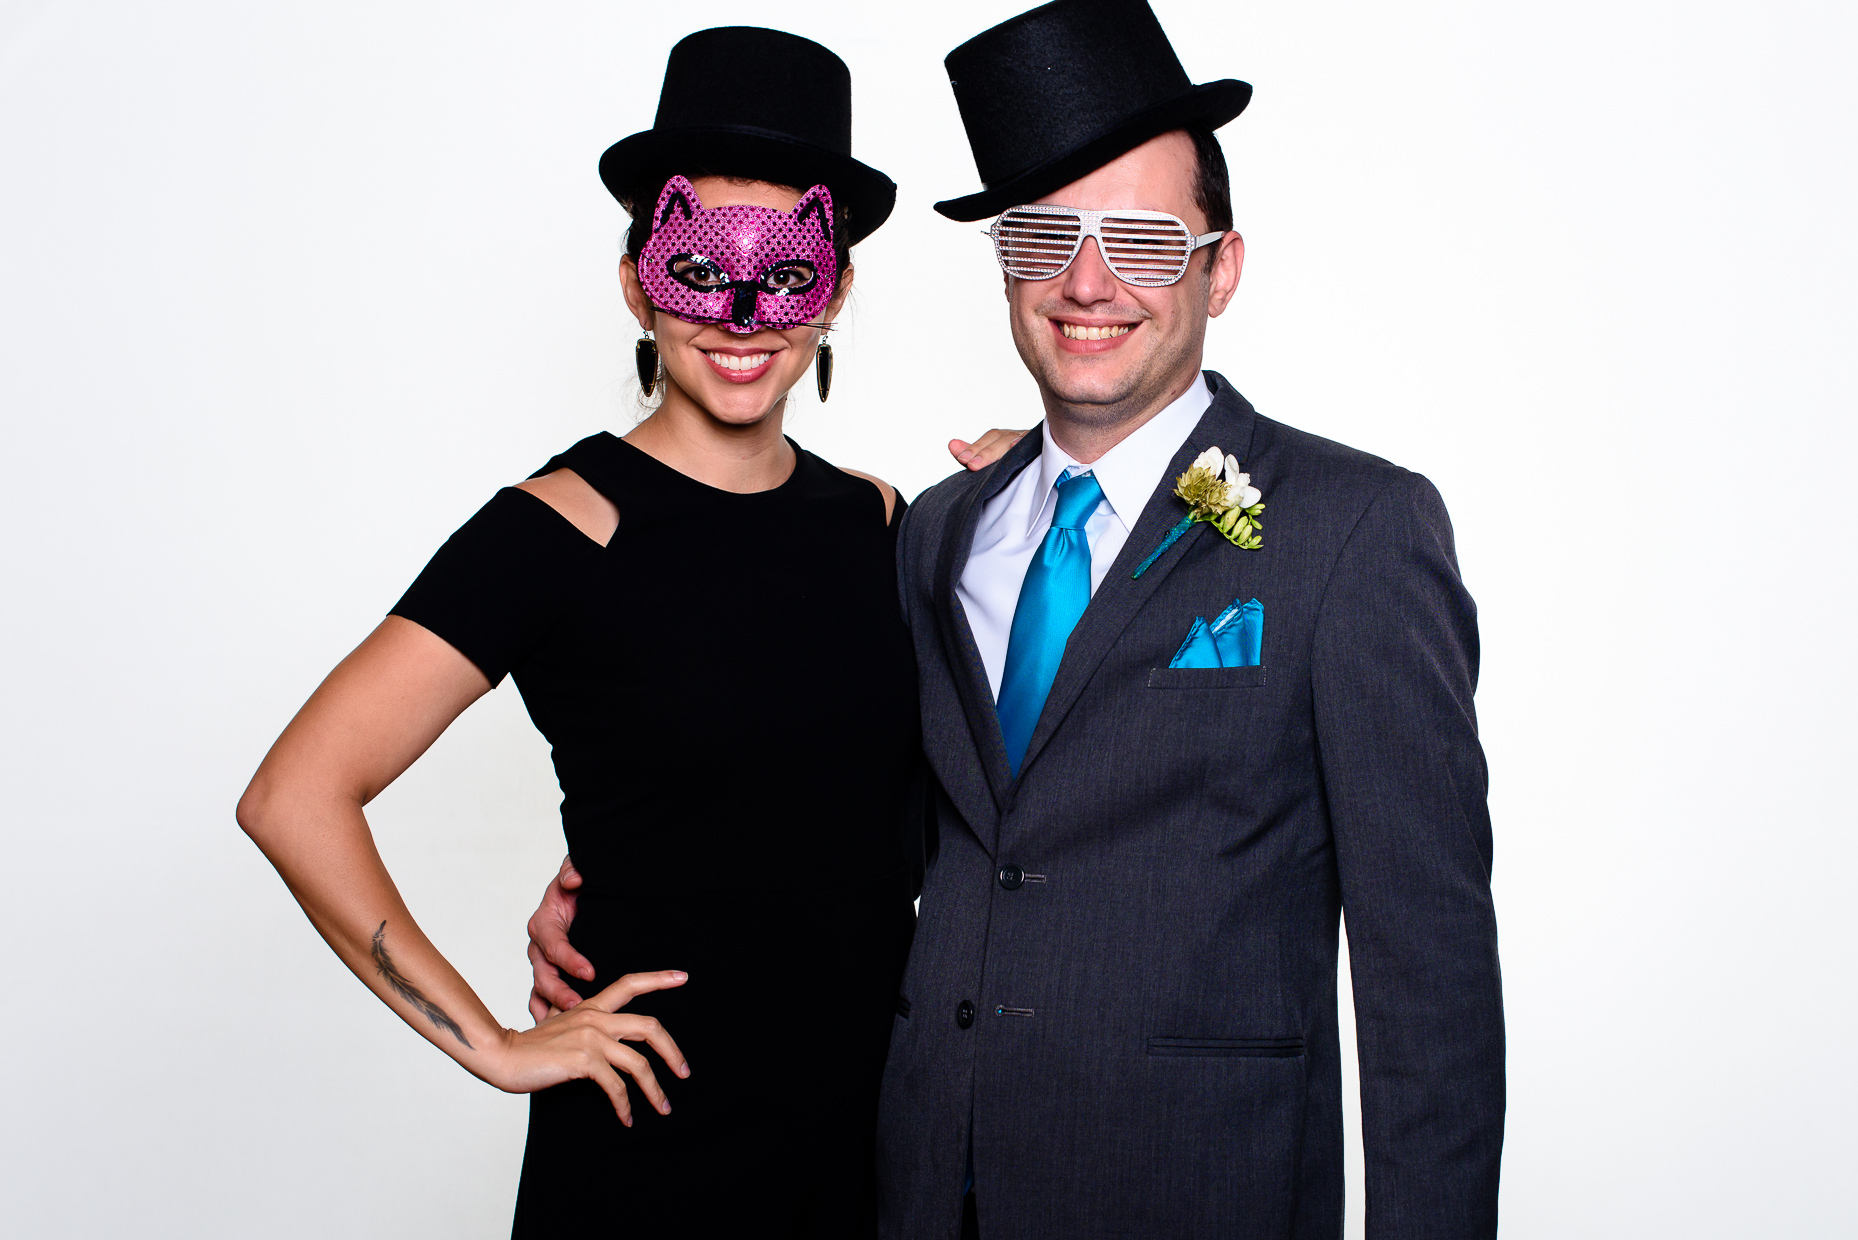 austin-teas-wedding-photographer-photo-booth-masks-hats